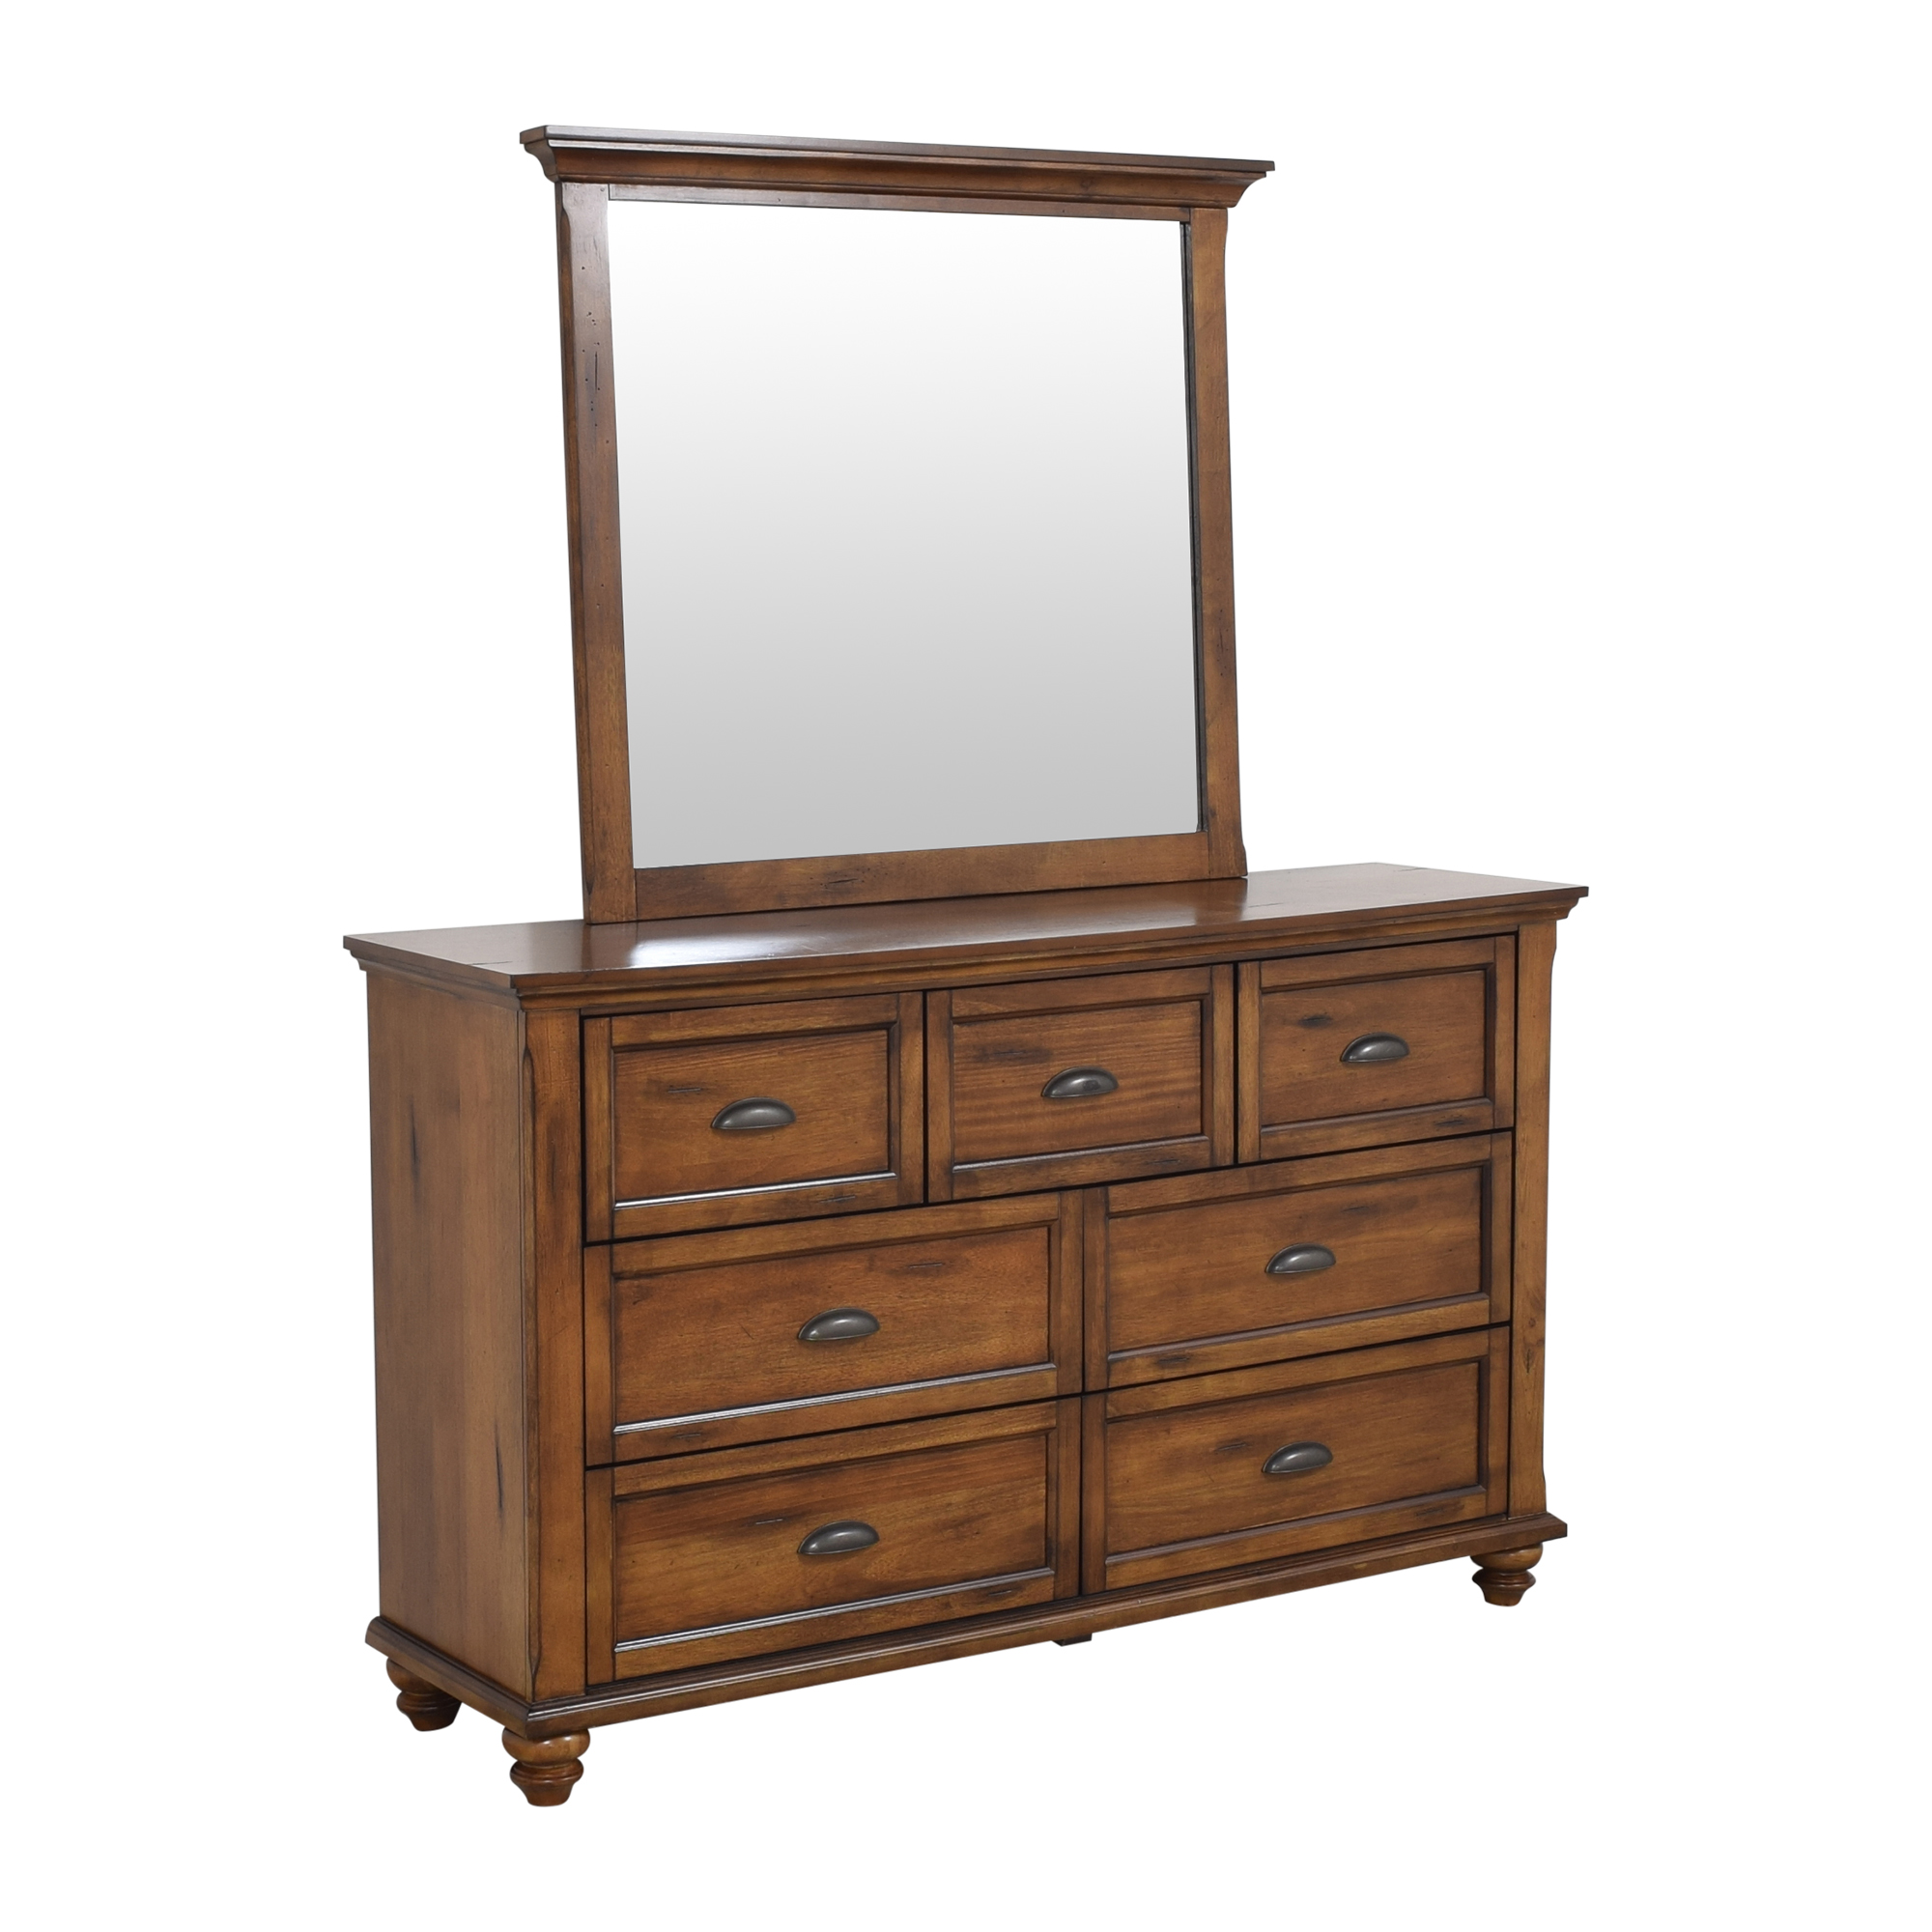 Simmons Simmons Remington Dresser with Mirror coupon